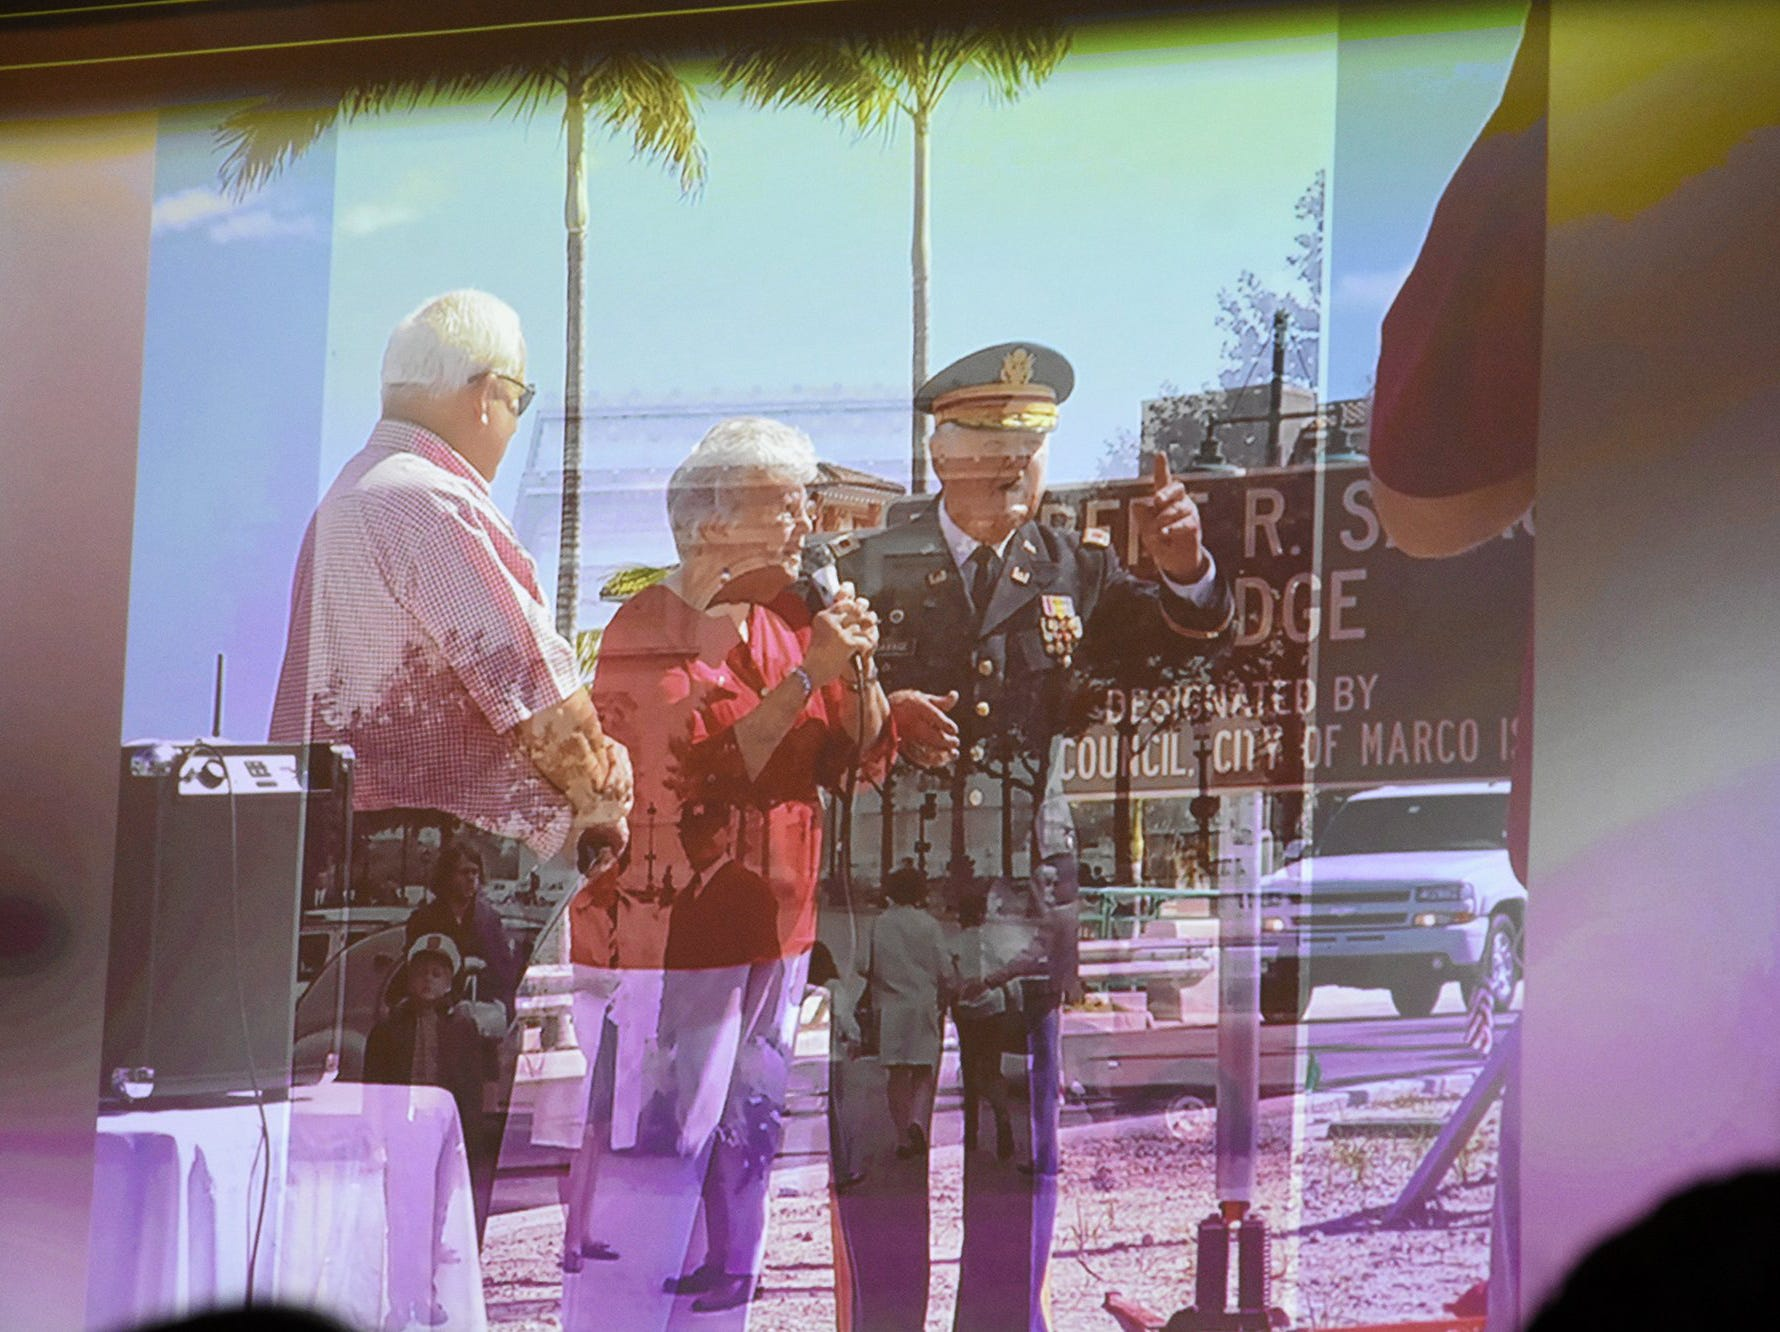 Images from a video of Herb and Emily Savage's life. The life of iconic island architect Herb Savage was celebrated in a ceremony Sunday afternoon at the Rose History Auditorium, with military honors and reminisces from family and friends.